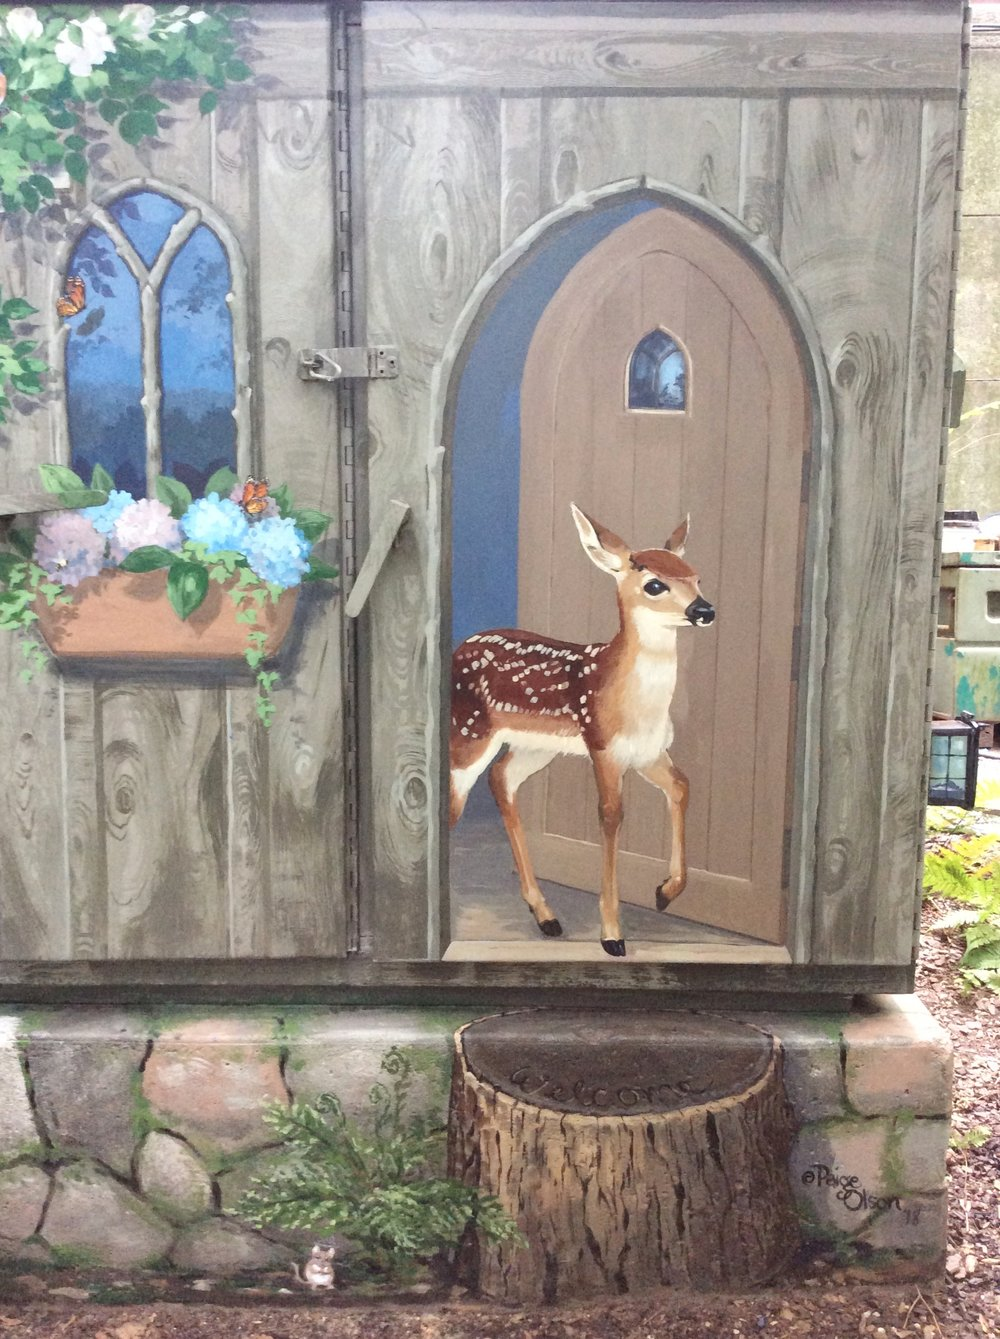 The fawn emerges from an empty cottage.